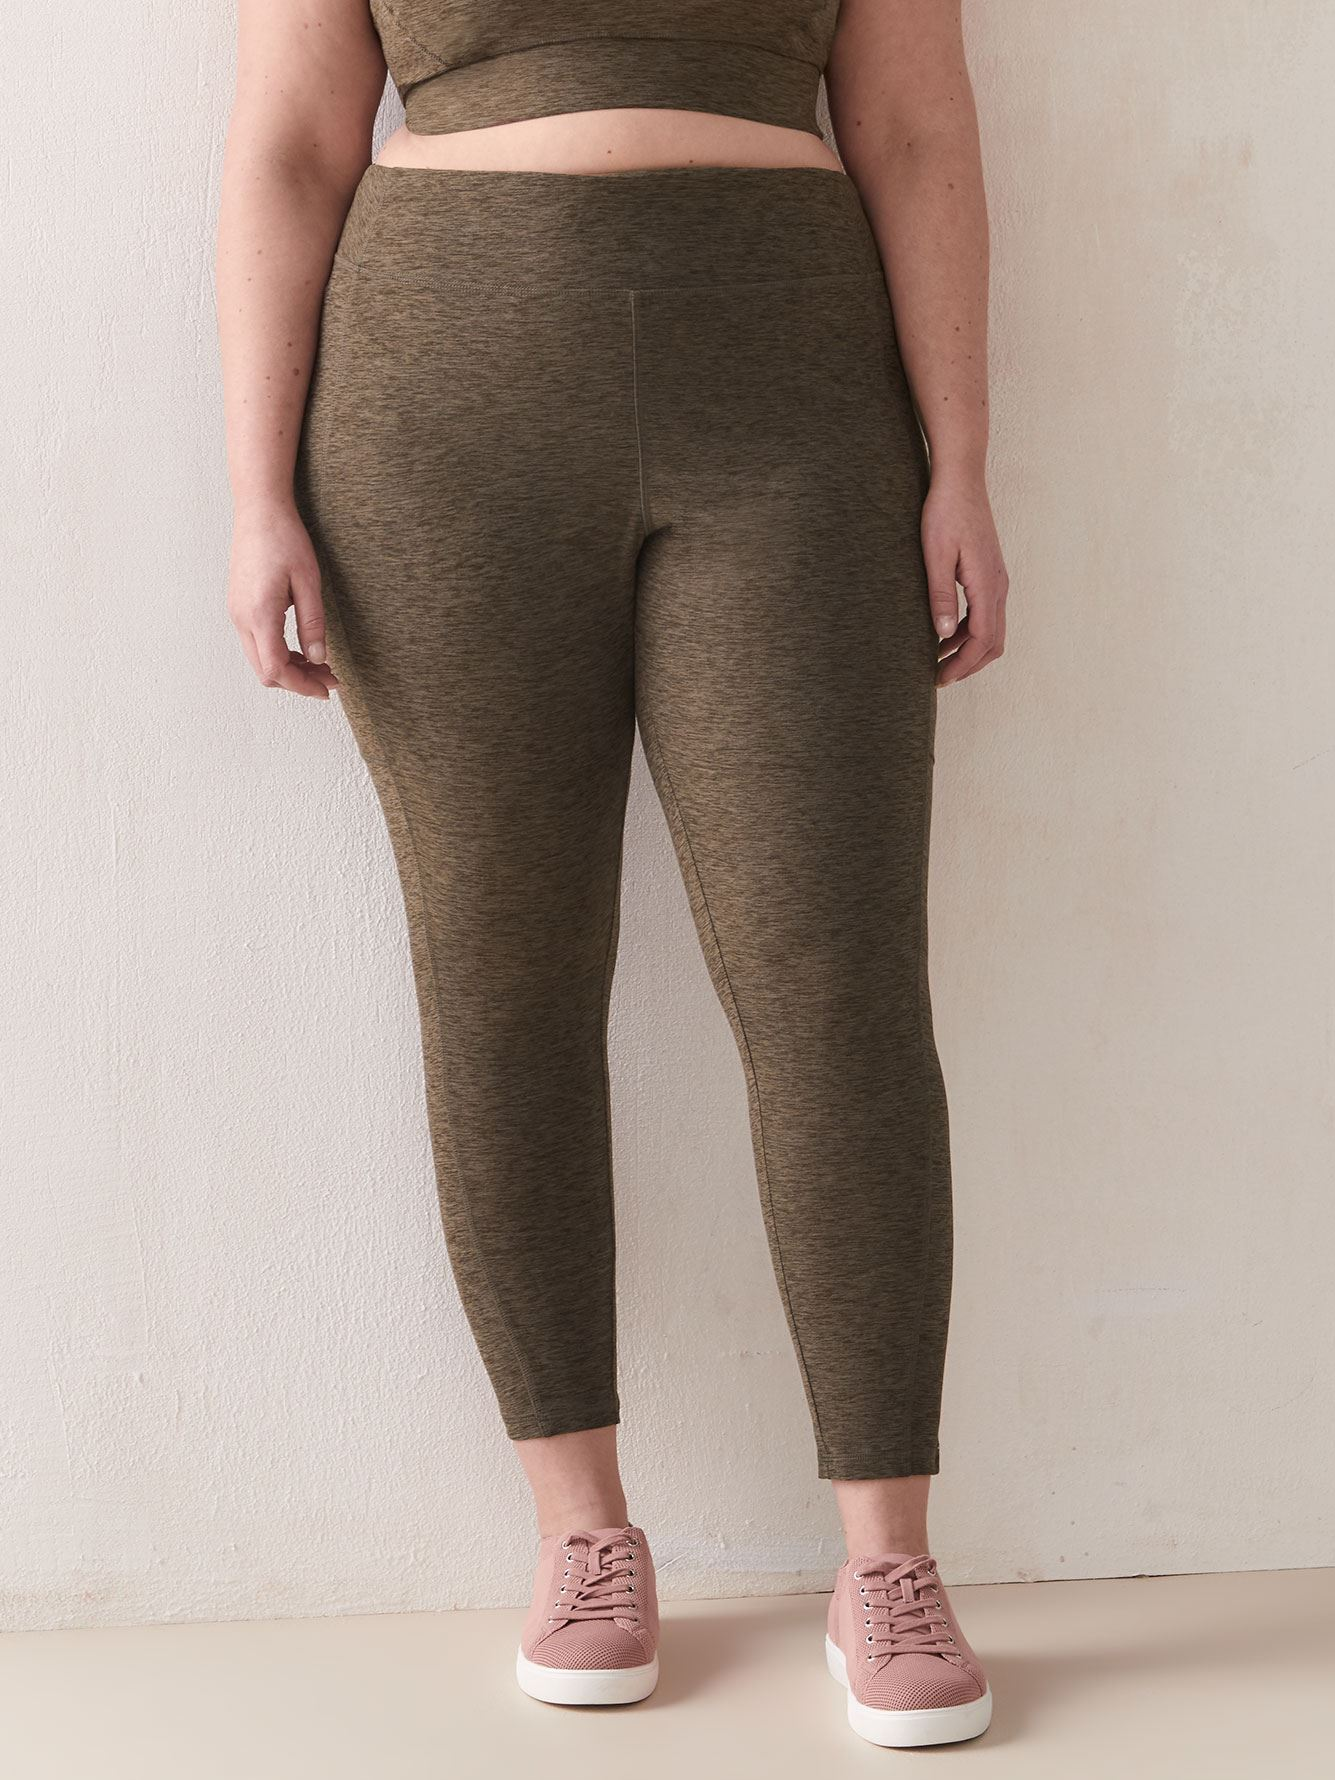 Namaste Space-Dye 7/8 Legging - ActiveZone